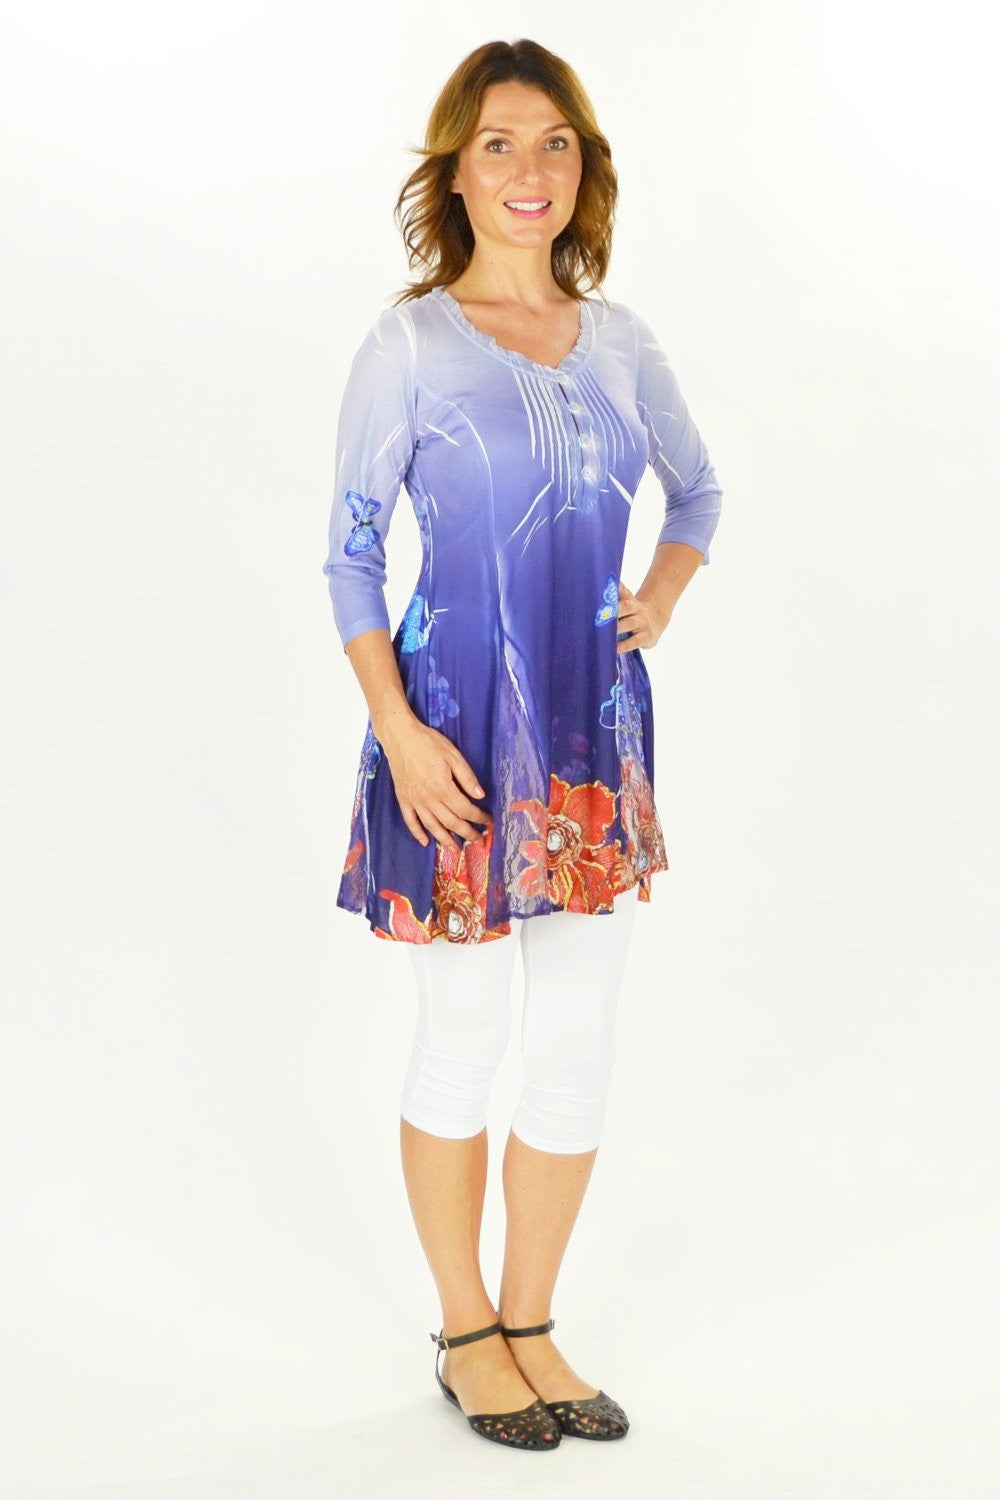 Flowers and Butterfly Tunic - at I Love Tunics @ www.ilovetunics.com = Number One! Tunics Destination